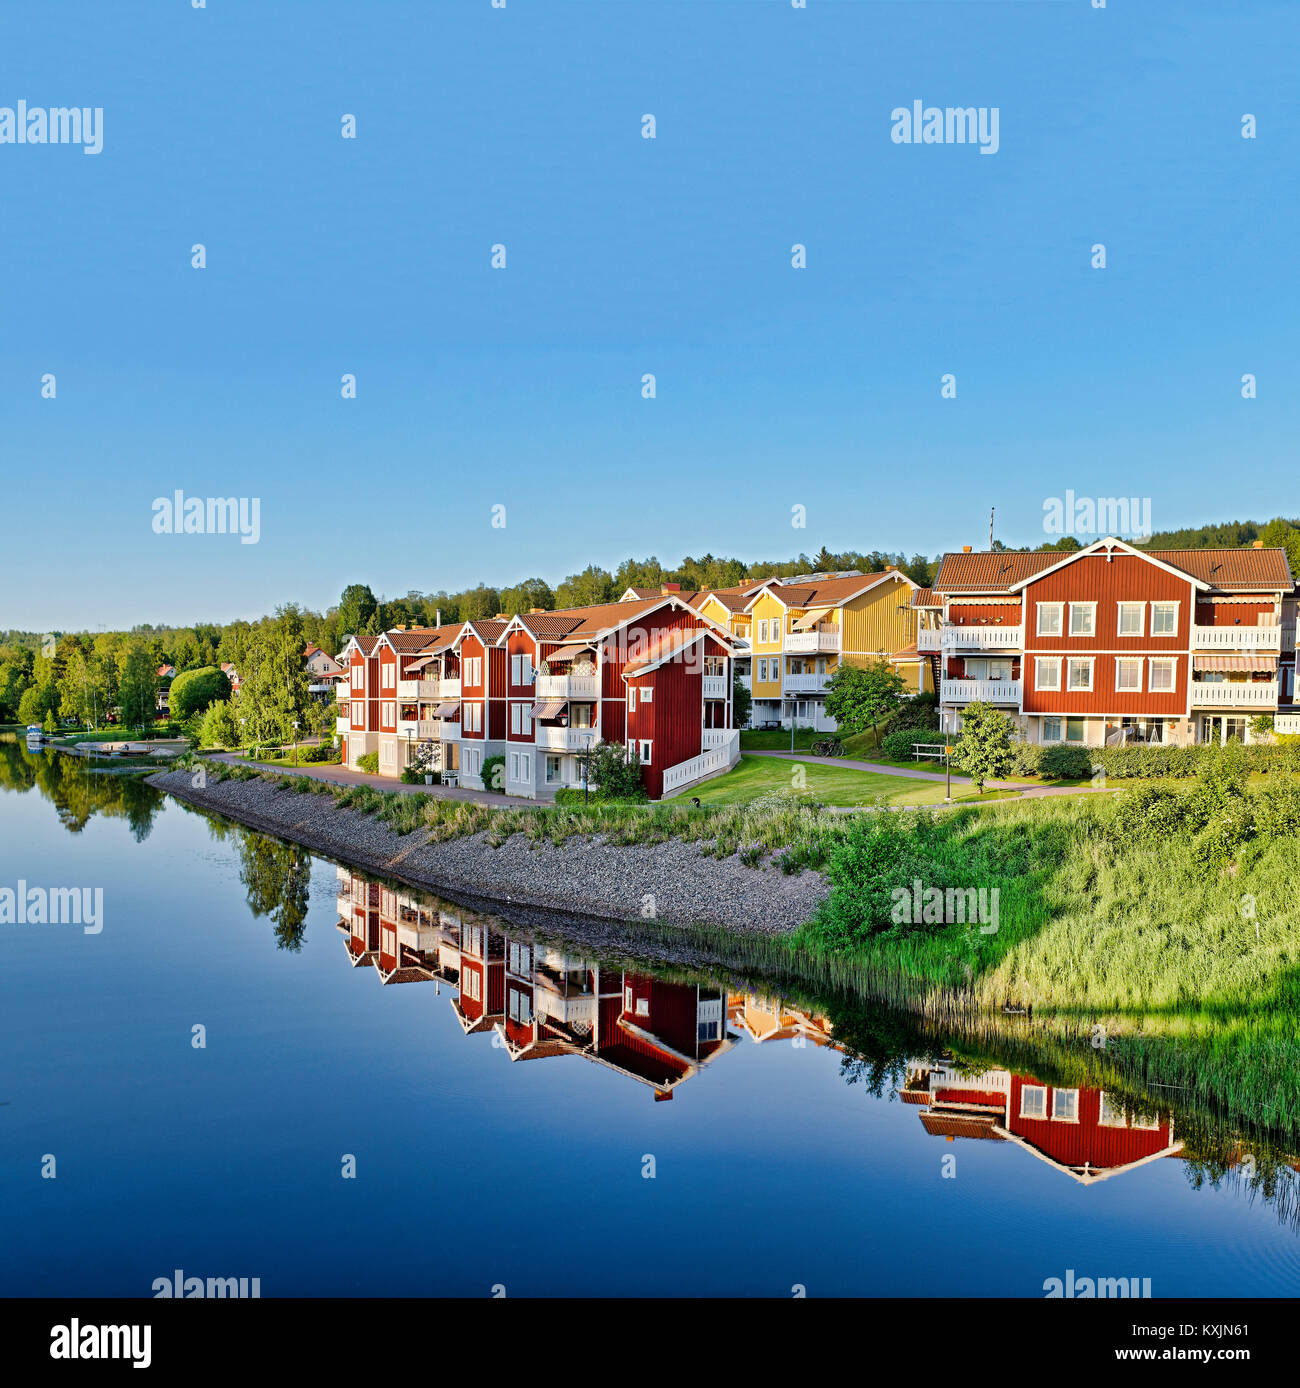 Peaceful residential area in Dalarna,Sweden Stock Photo